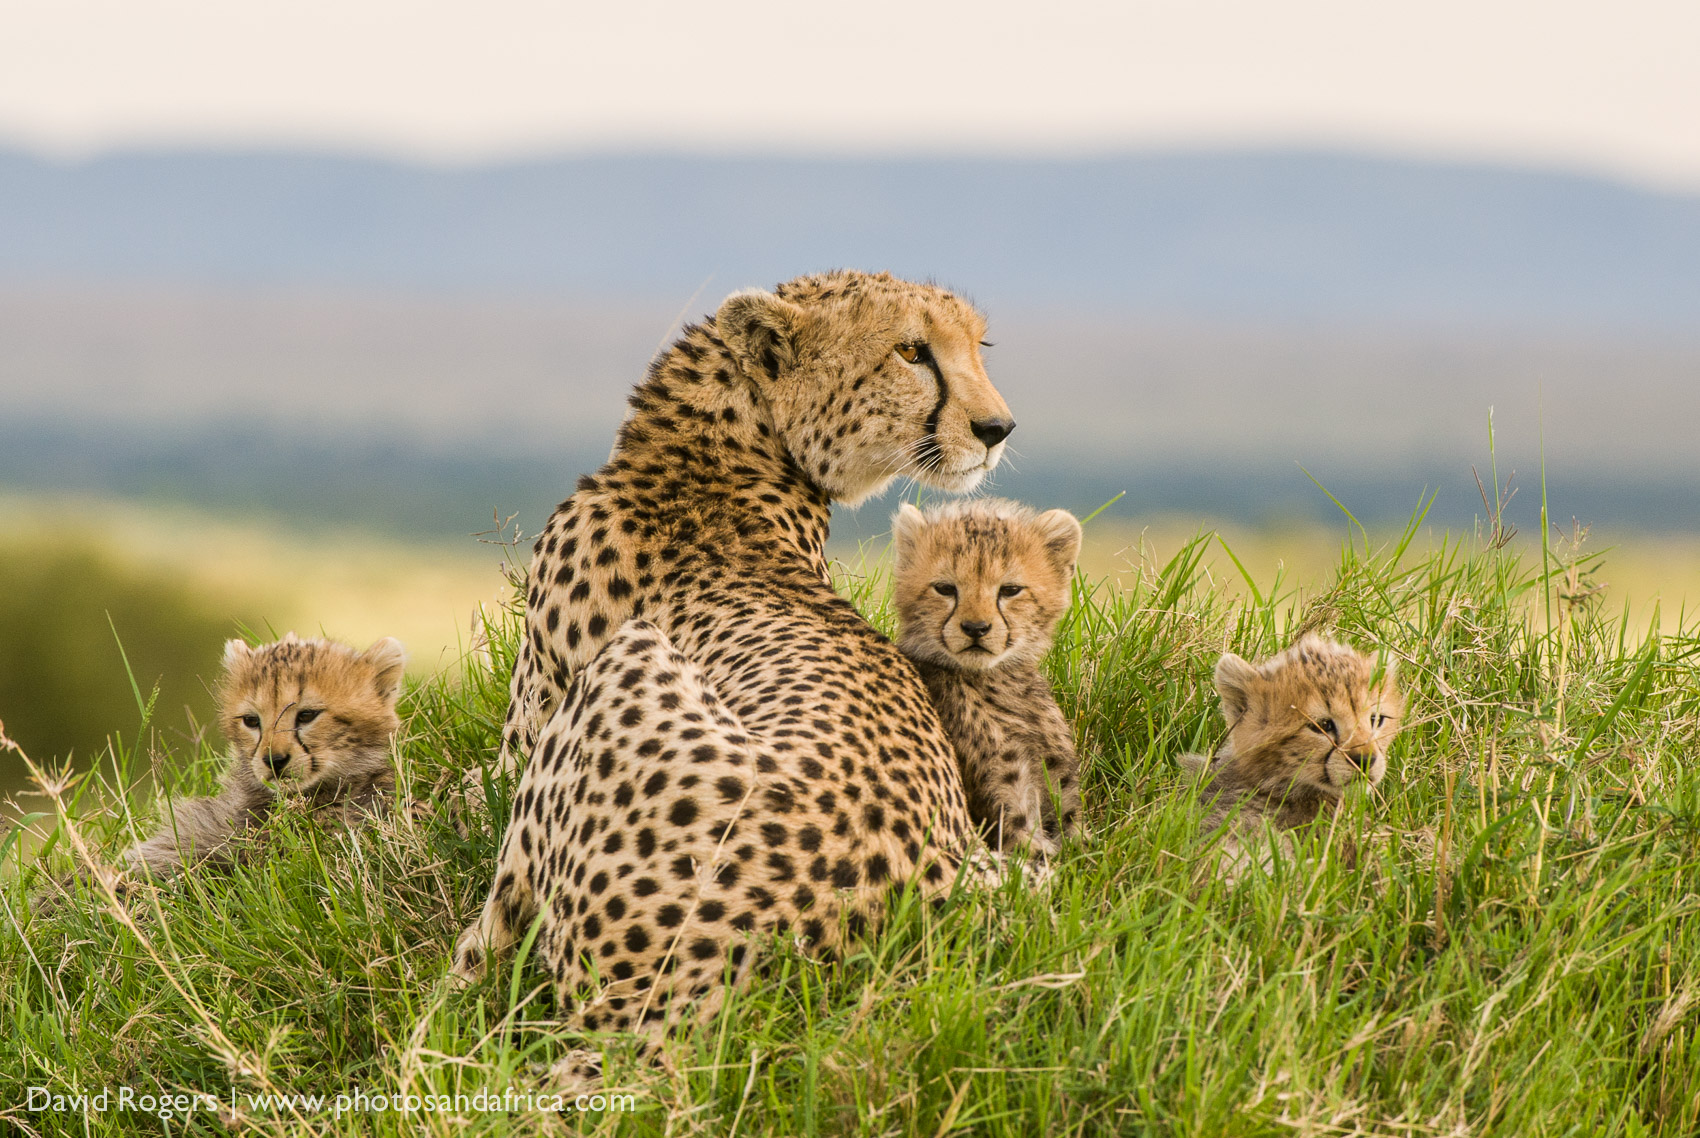 Kenya, Masai Mara National Park, Acheetah sitting in the grass with three young cubs. ©David Rogers